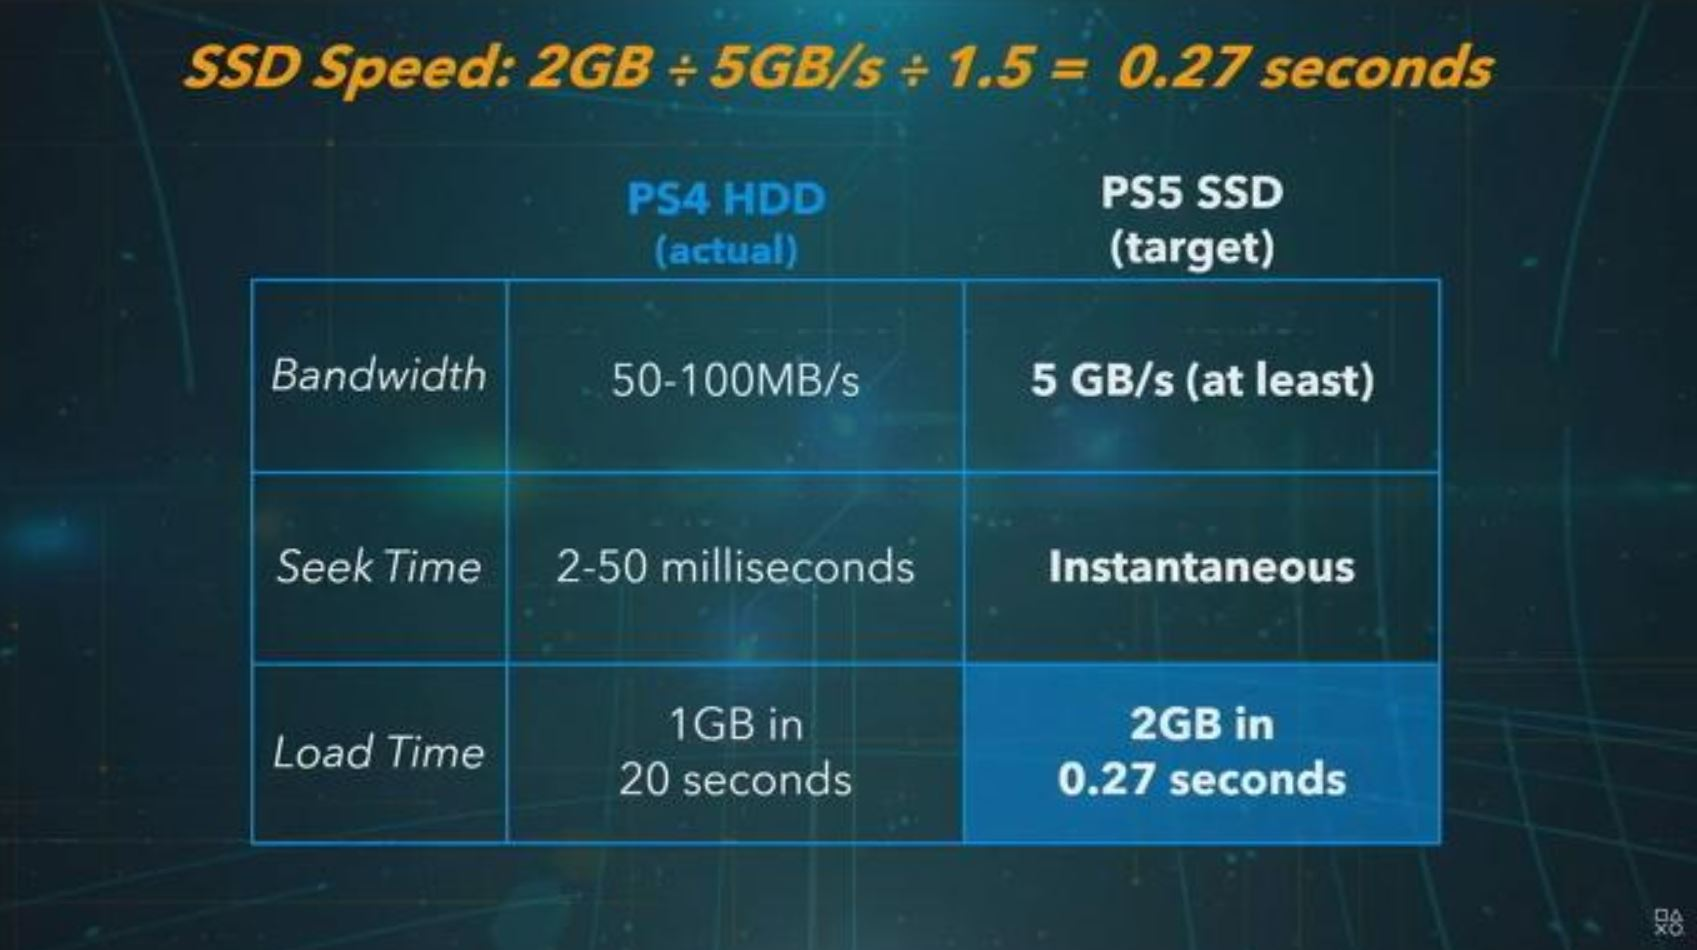 SSD Speed PS5 - PS5 price in Nigeria, release date, and complete details